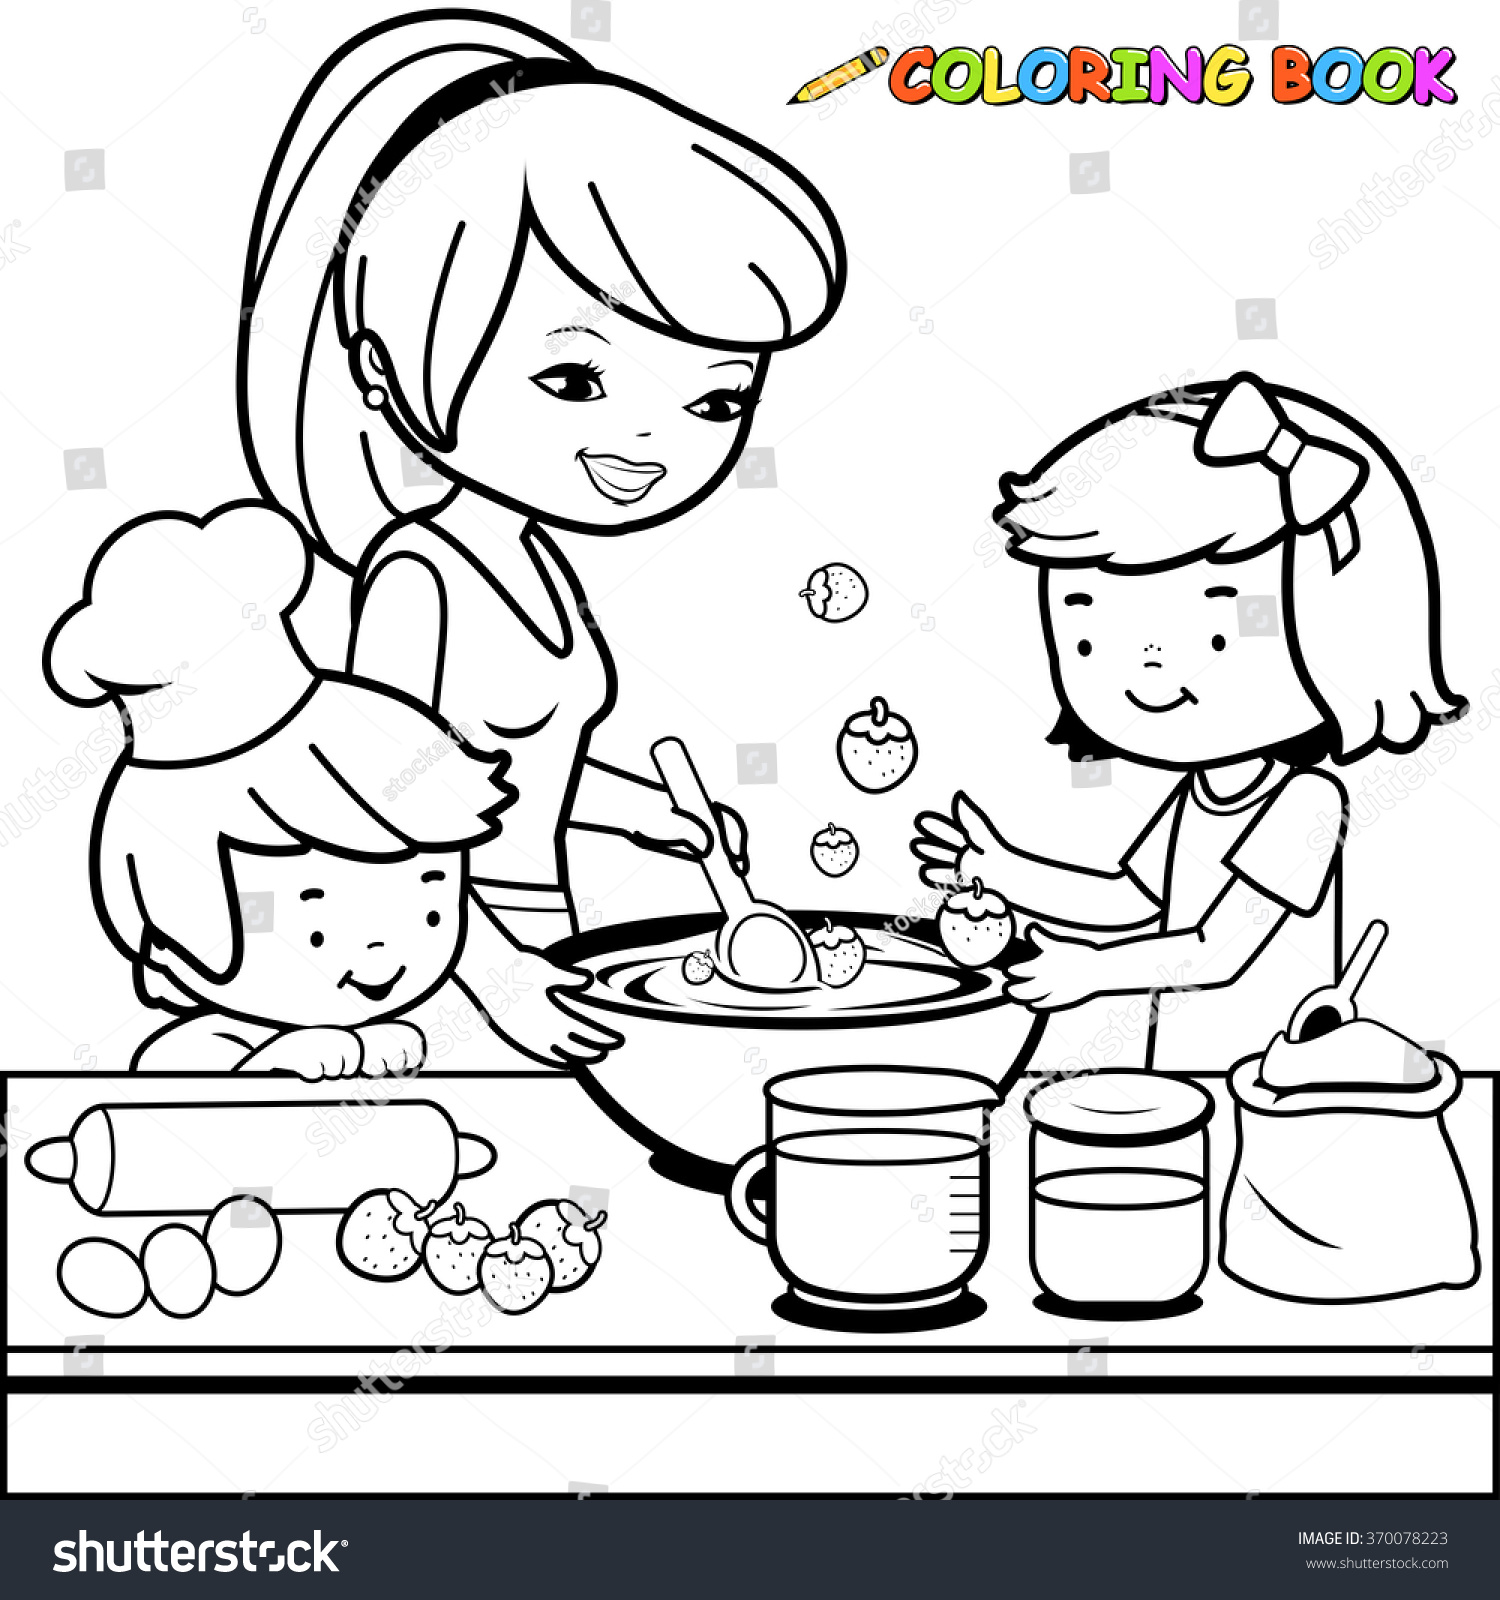 Cooking Utensils Drawing For Kids : mother and children cooking in the kitchen coloring book page stock